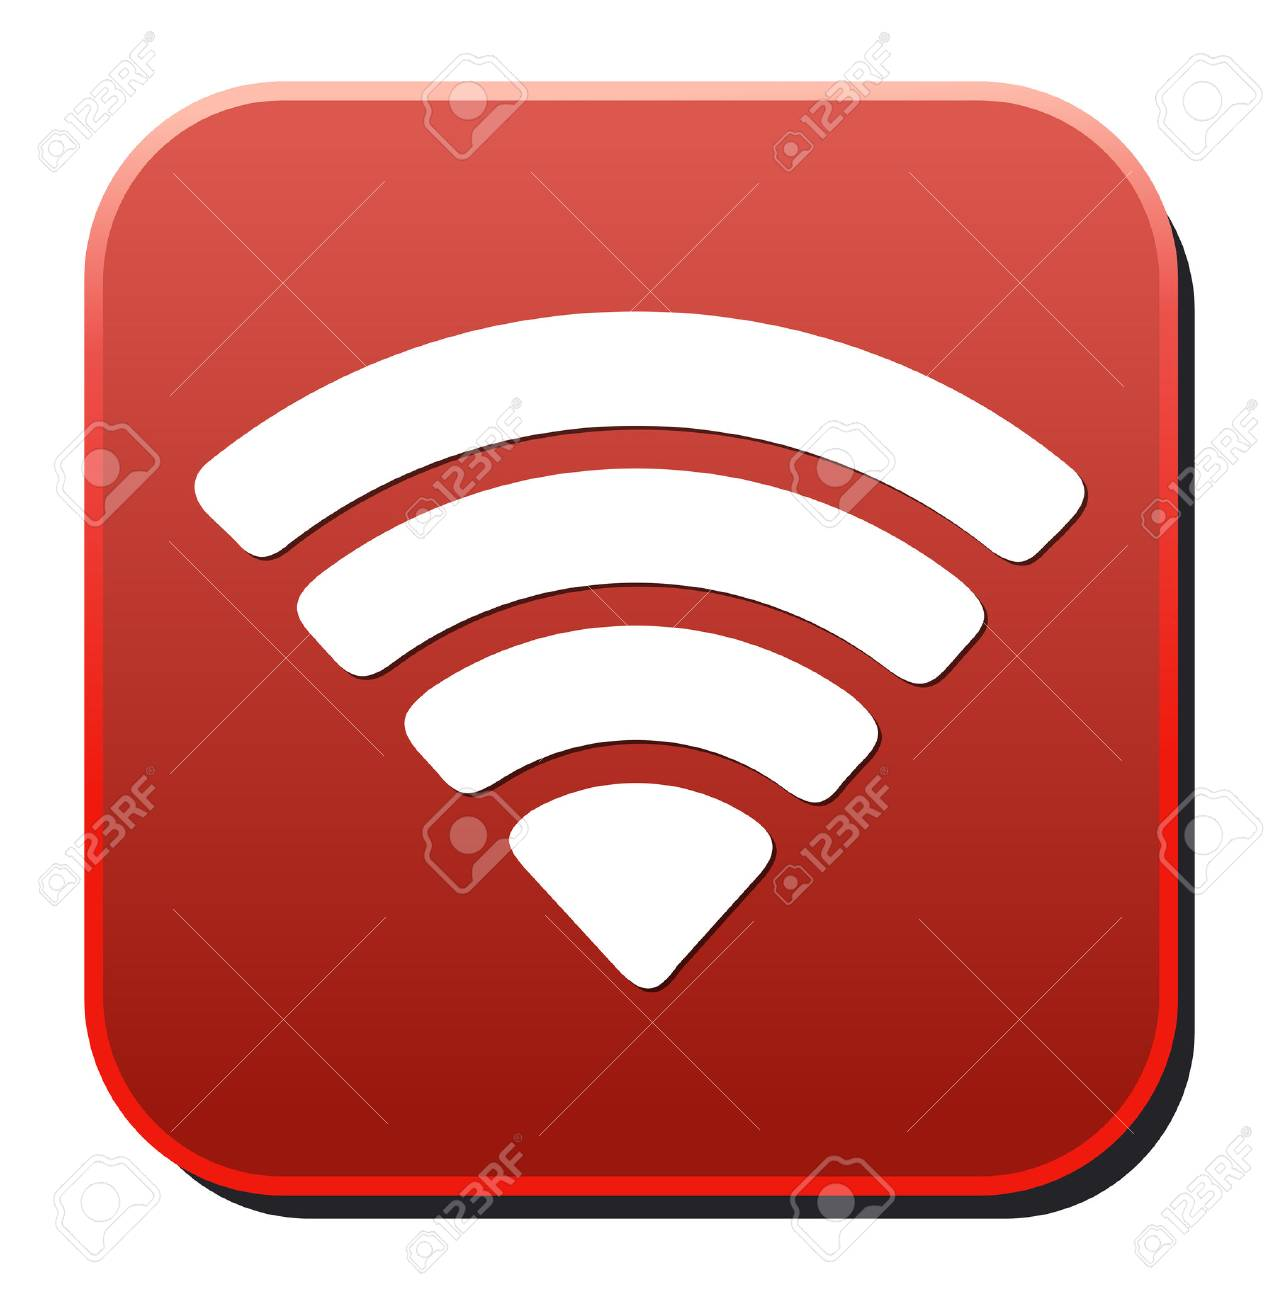 wifi icons for business or commercial use royalty free cliparts